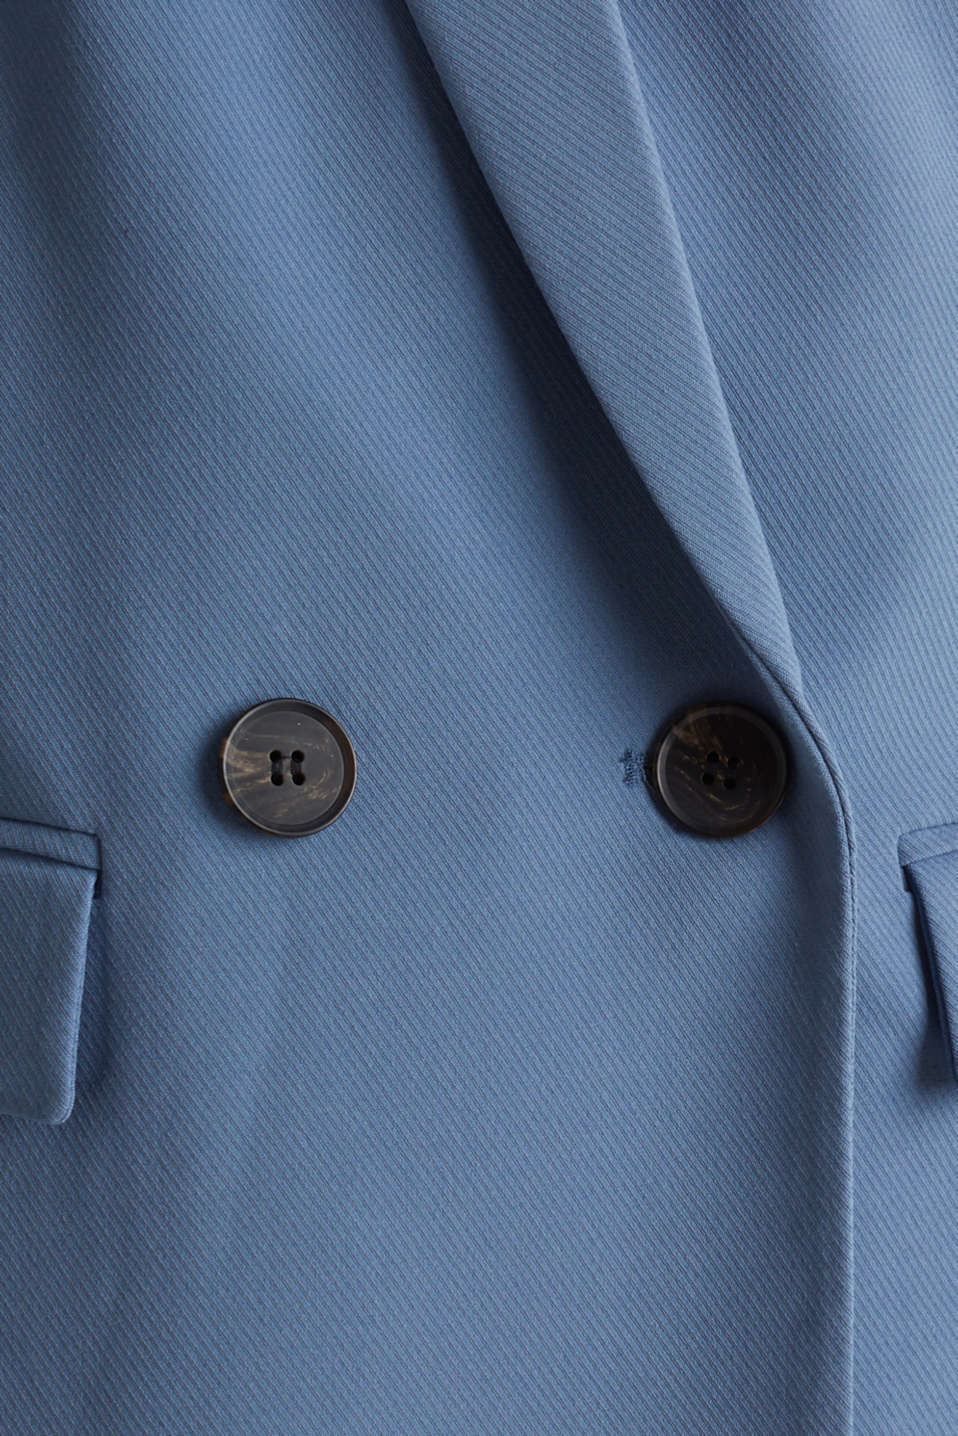 COLORED TWILL Mix + Match stretch blazer, GREY BLUE, detail image number 4